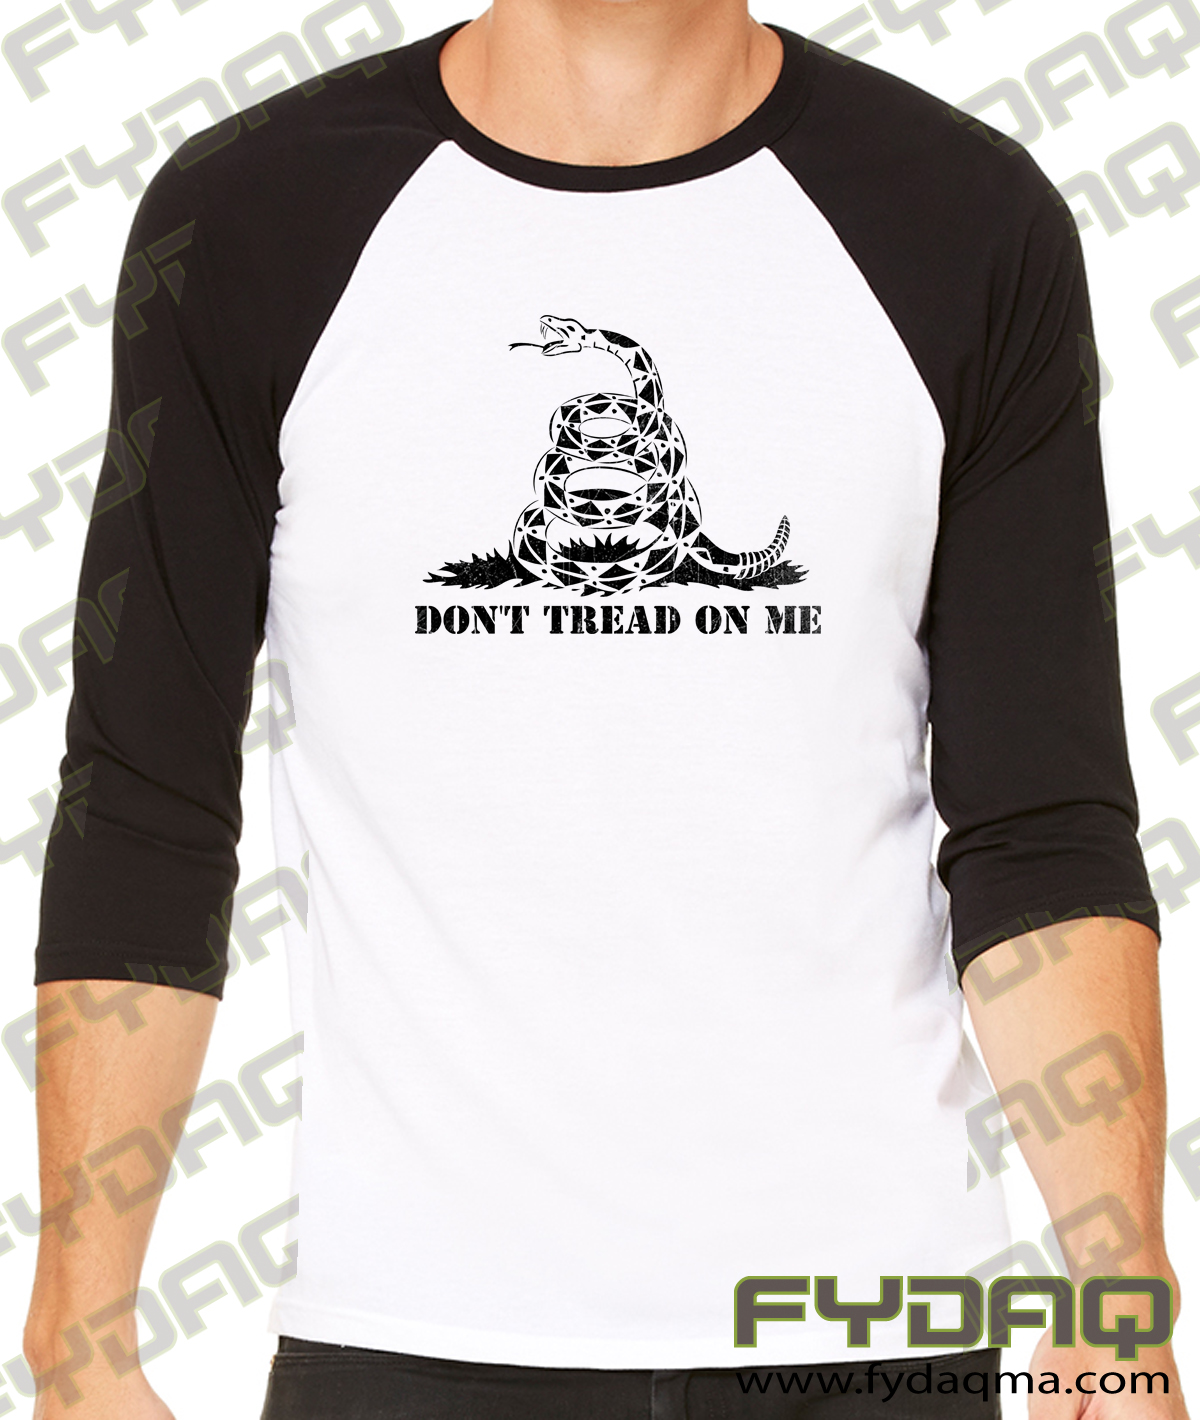 gadsden-flag-don't-tread-on-me-raglan-black-white-fydaq